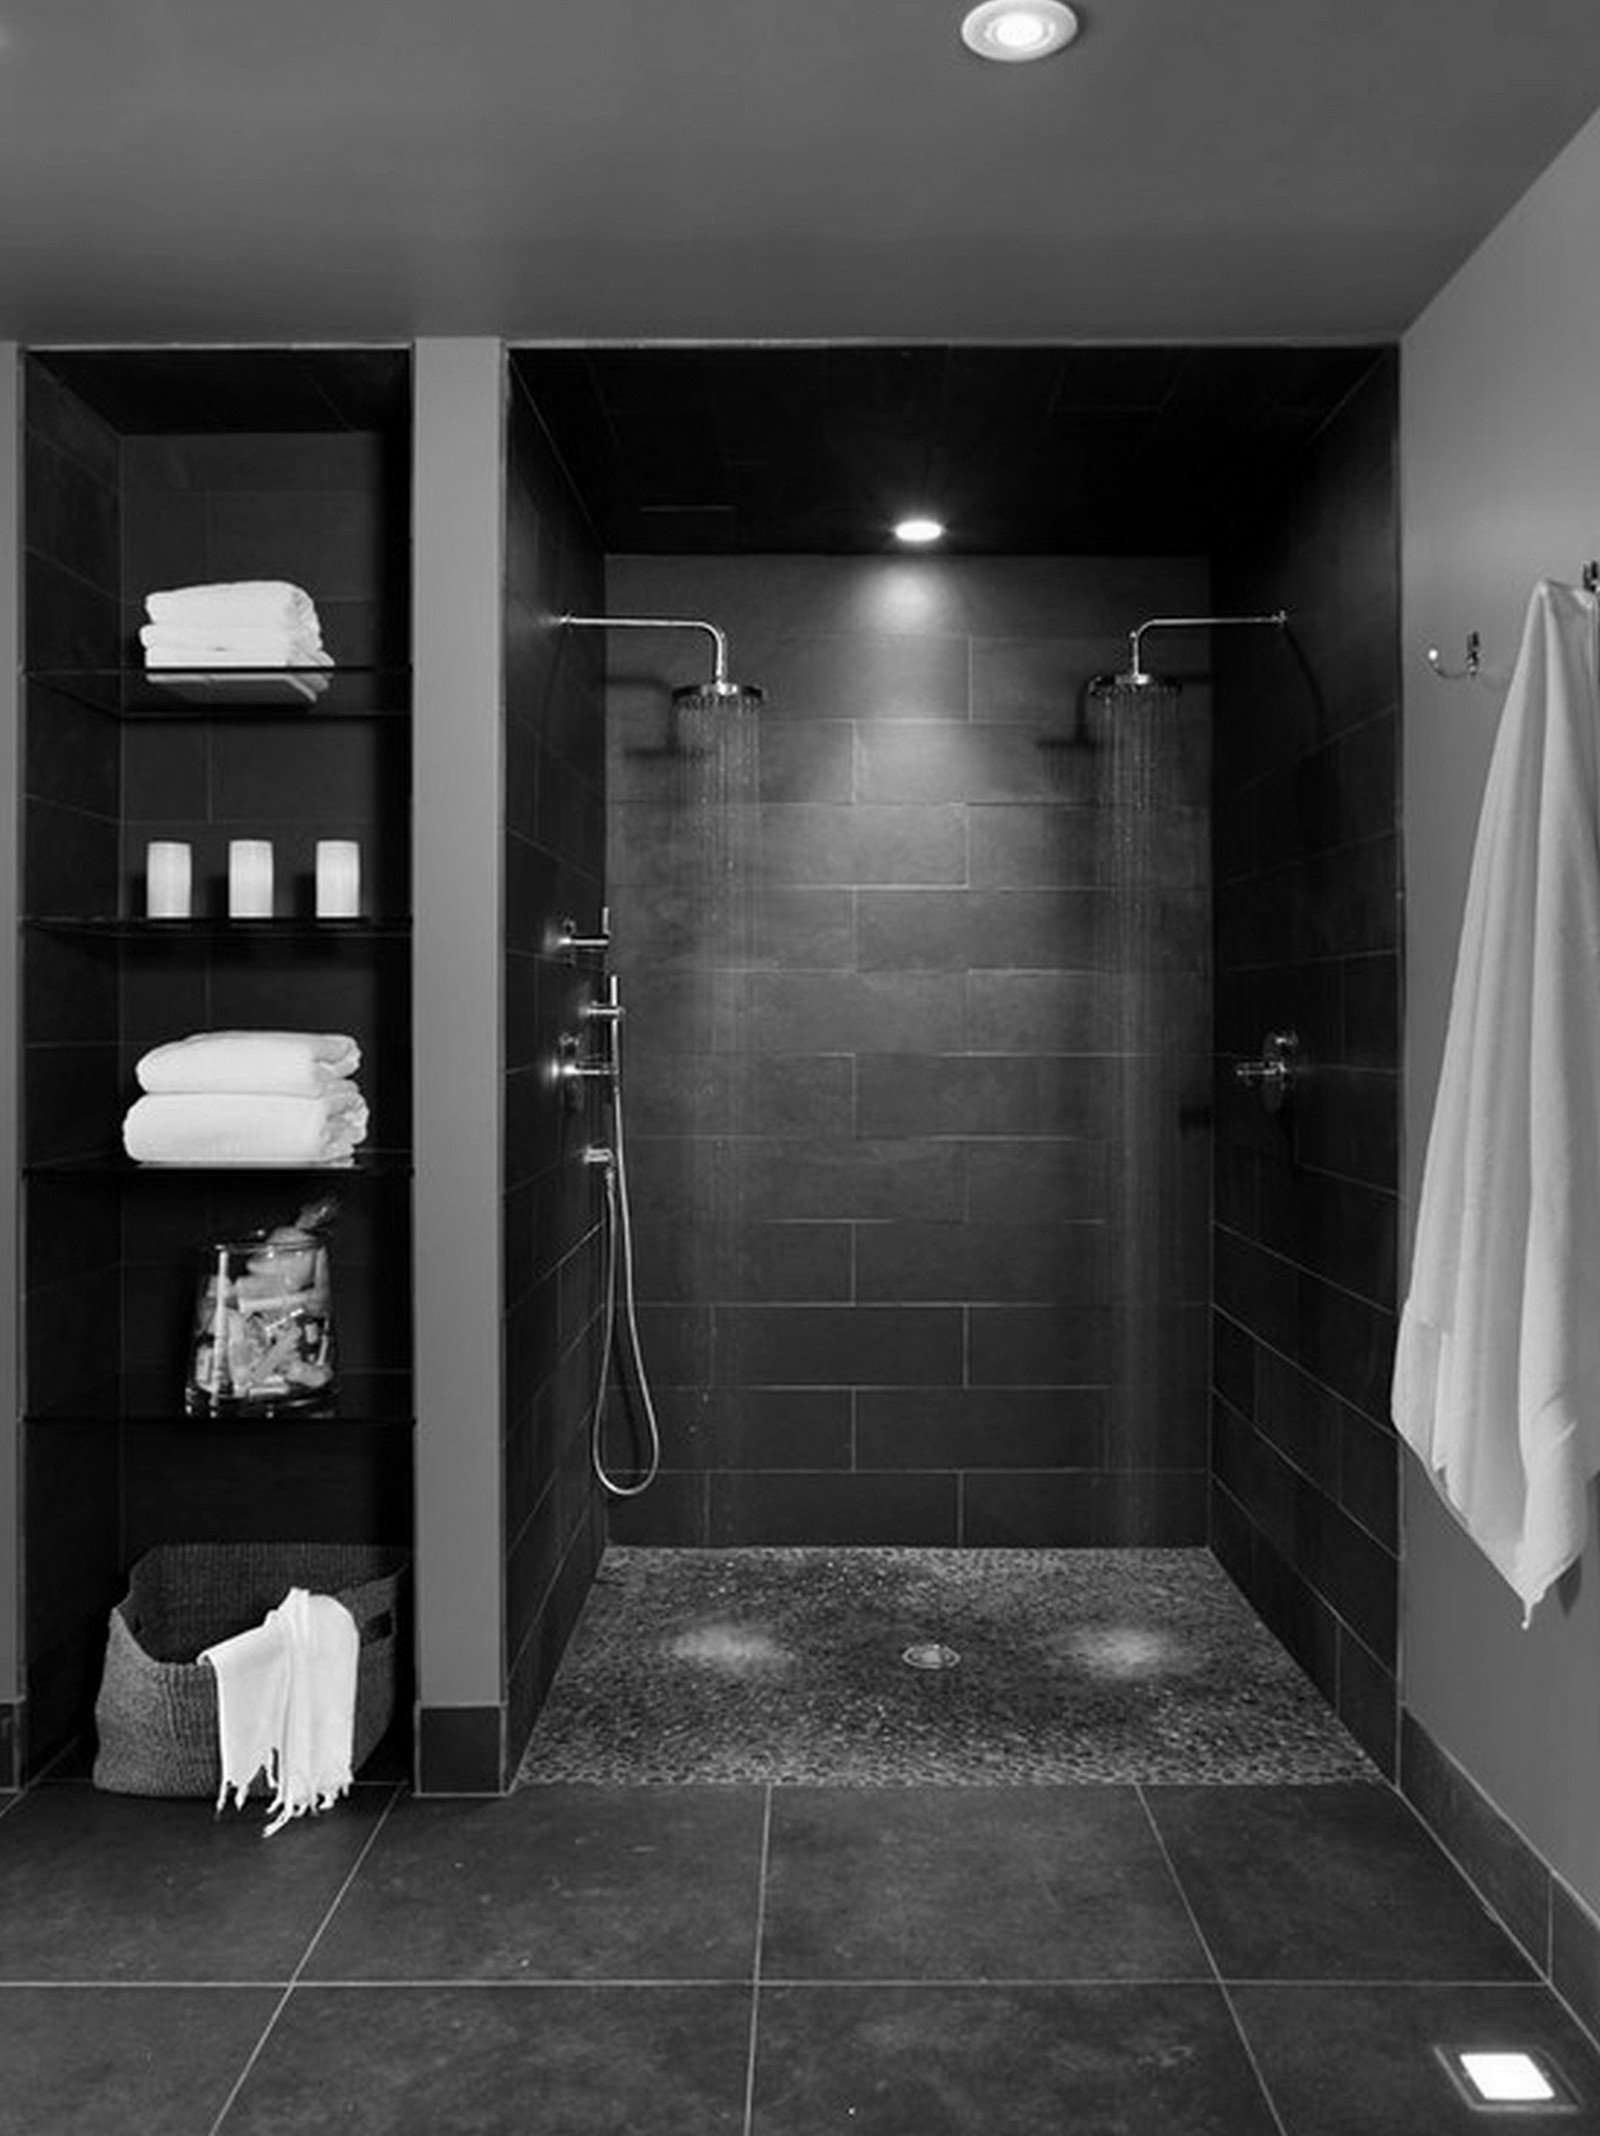 Lovely Design Of The Basement Bathroom Ideas With Black Wall Ideas Added With Black Wooden Shelves For Bottle And Towel Ideas